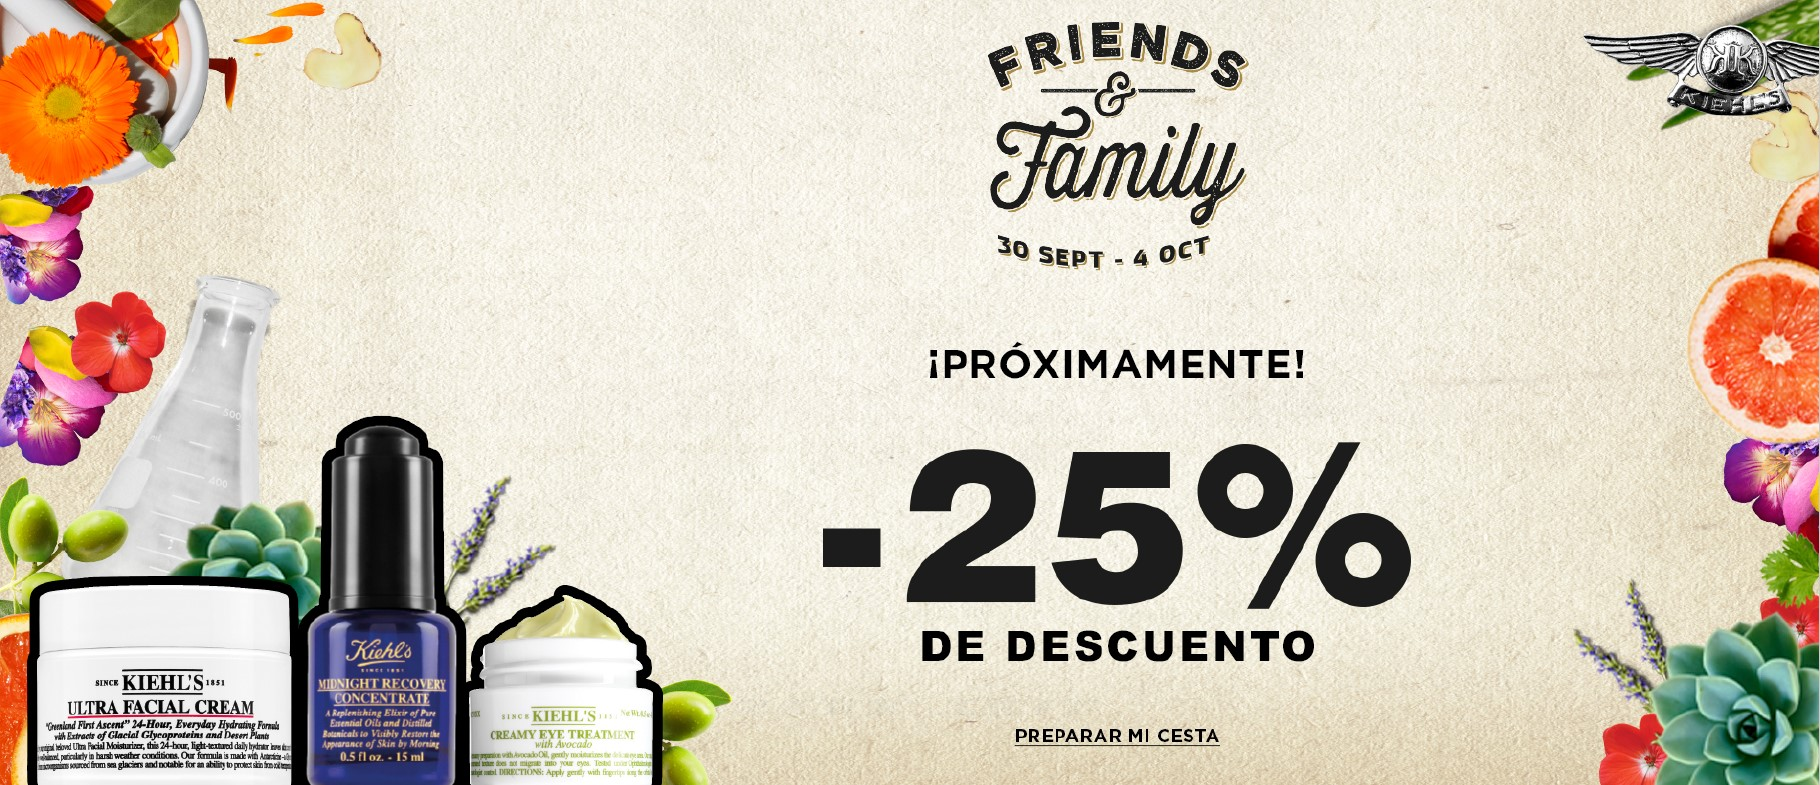 kiehls friends and family octubre 2020